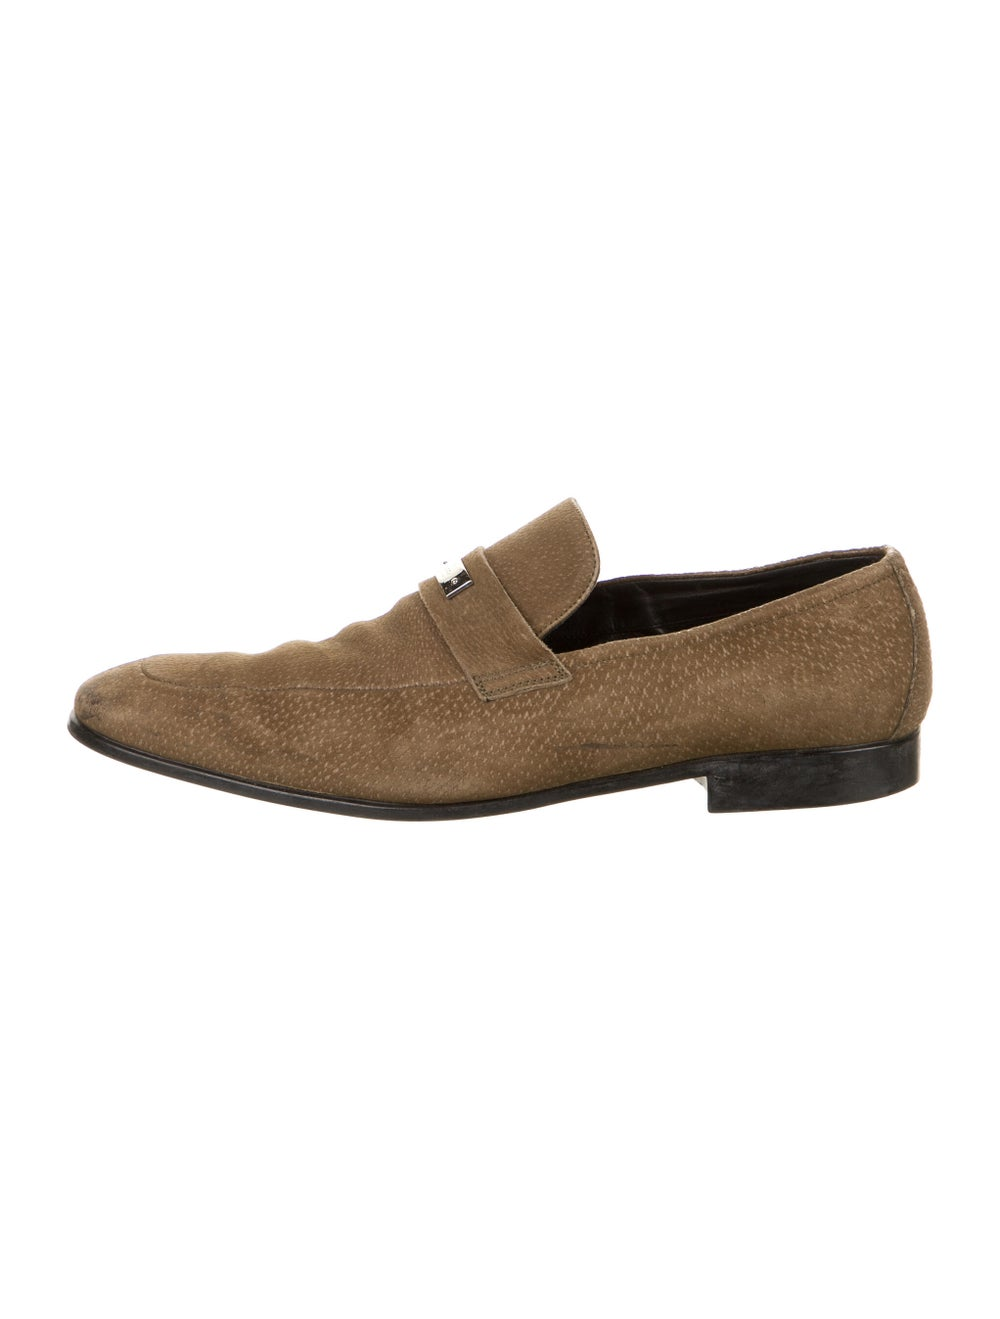 Gucci Suede Dress Loafers Green - image 1